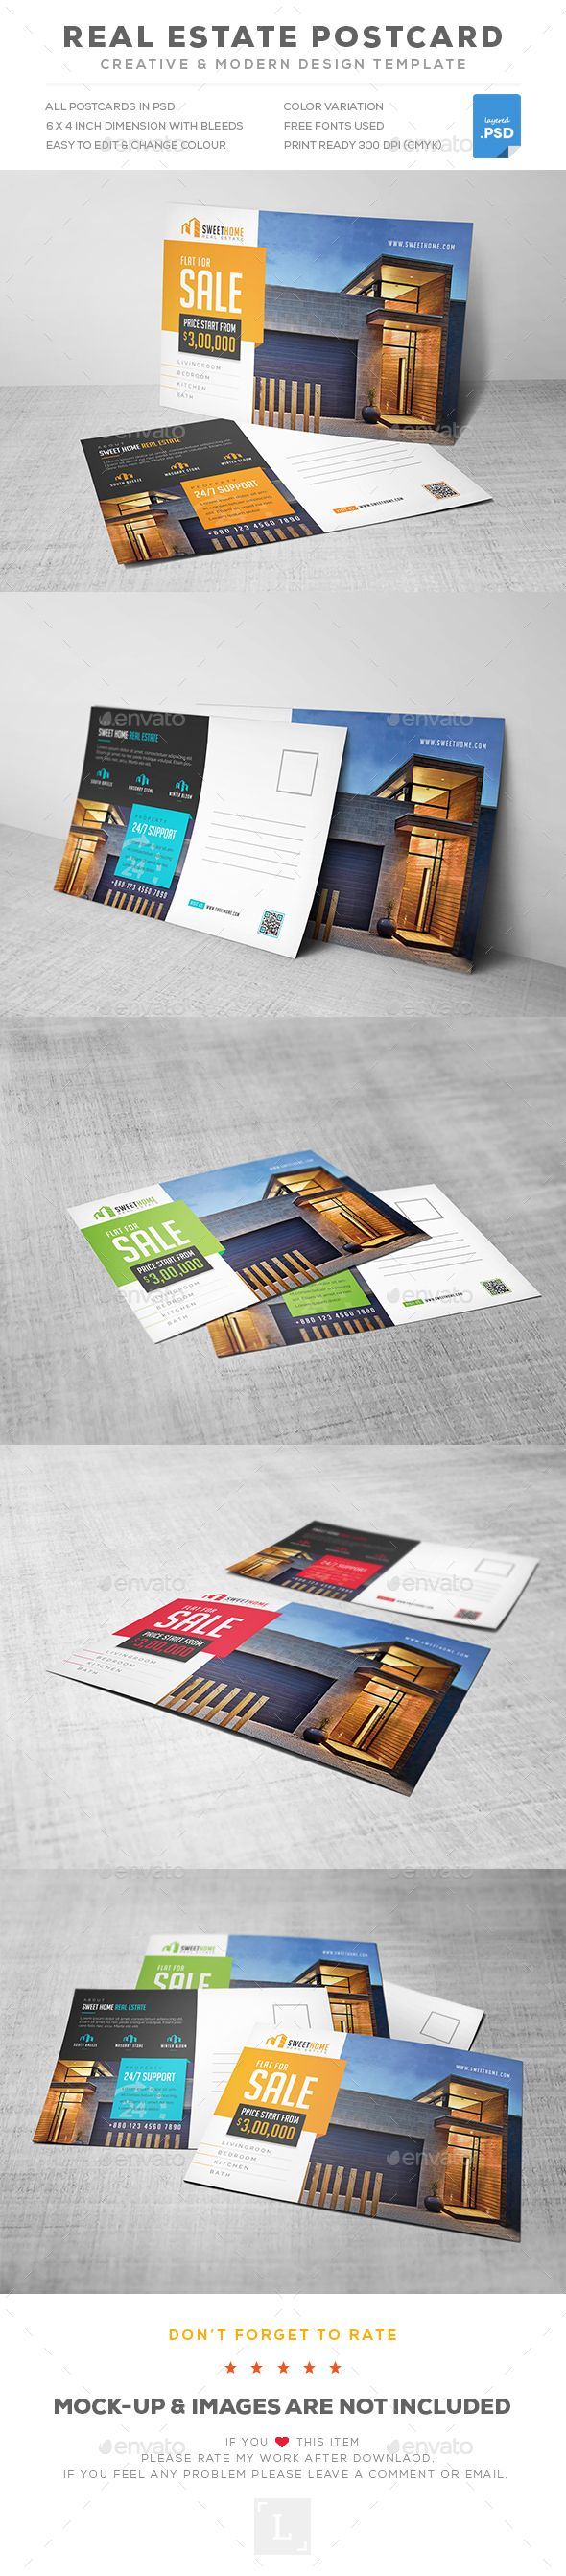 Real Estate Postcard Template PSD